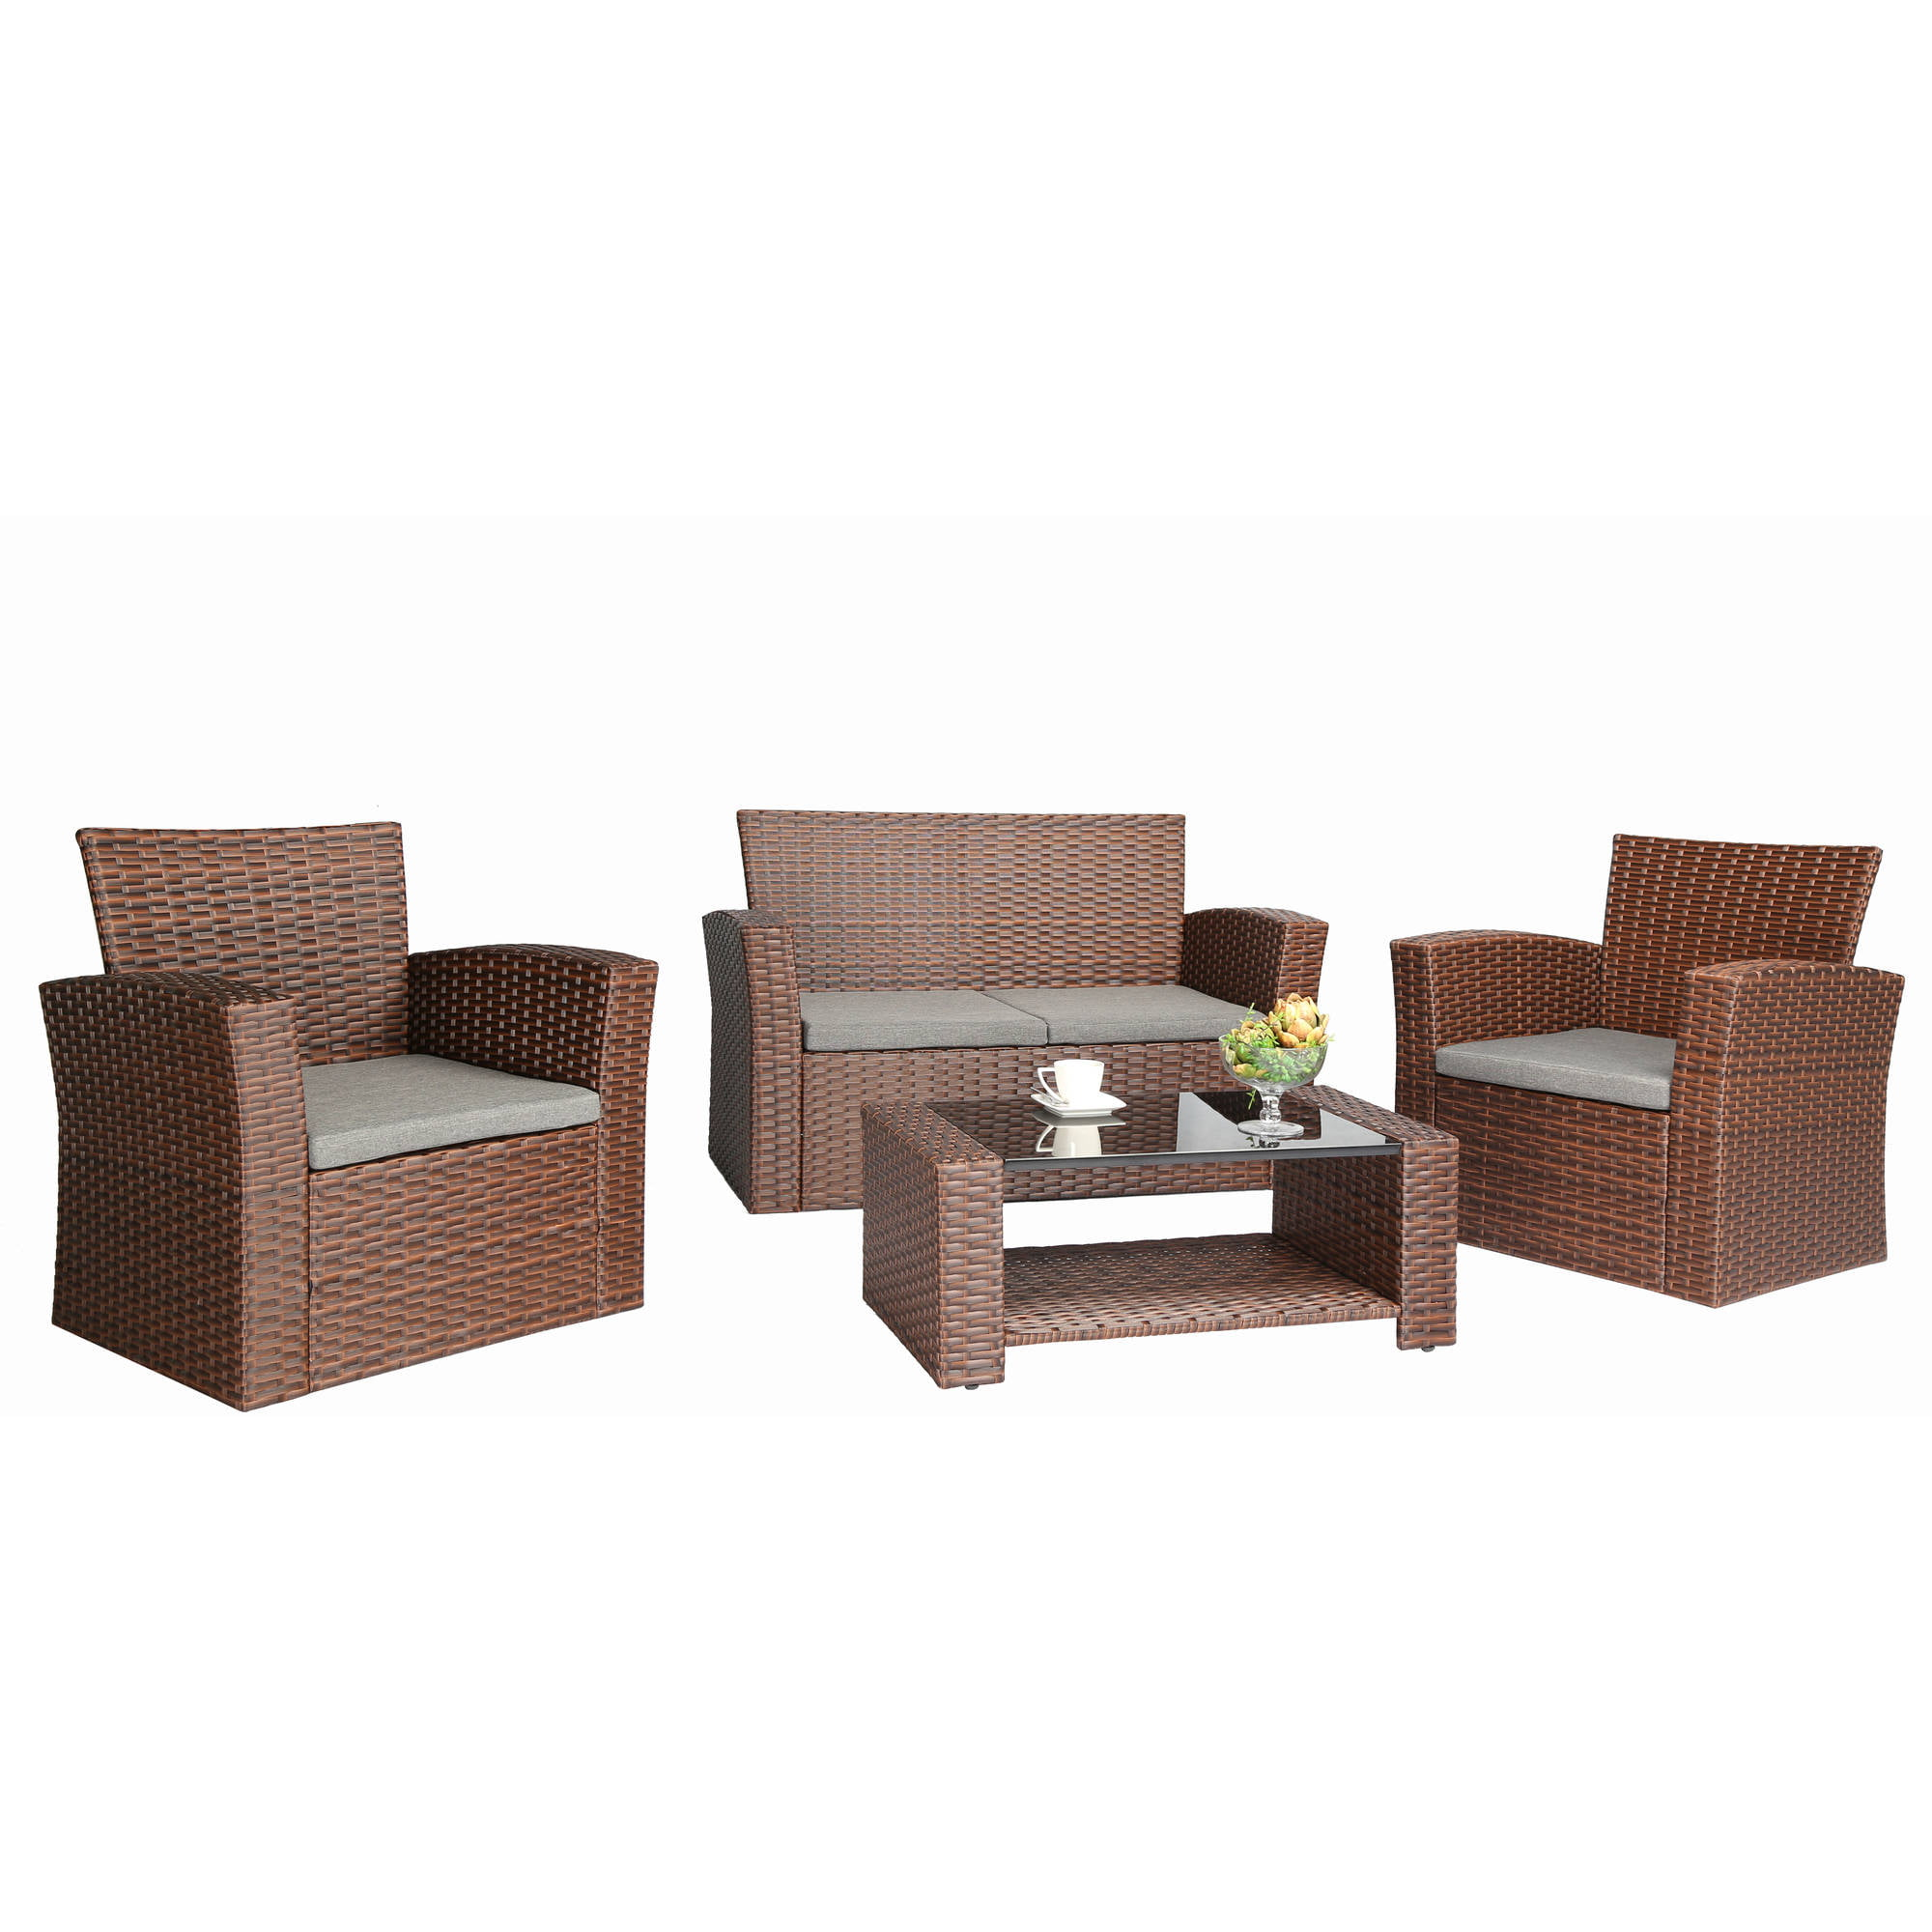 Baner Garden Outdoor Furniture Complete Patio Cushion PE Wicker Rattan Garden Set, Brown,... by Baner Garden